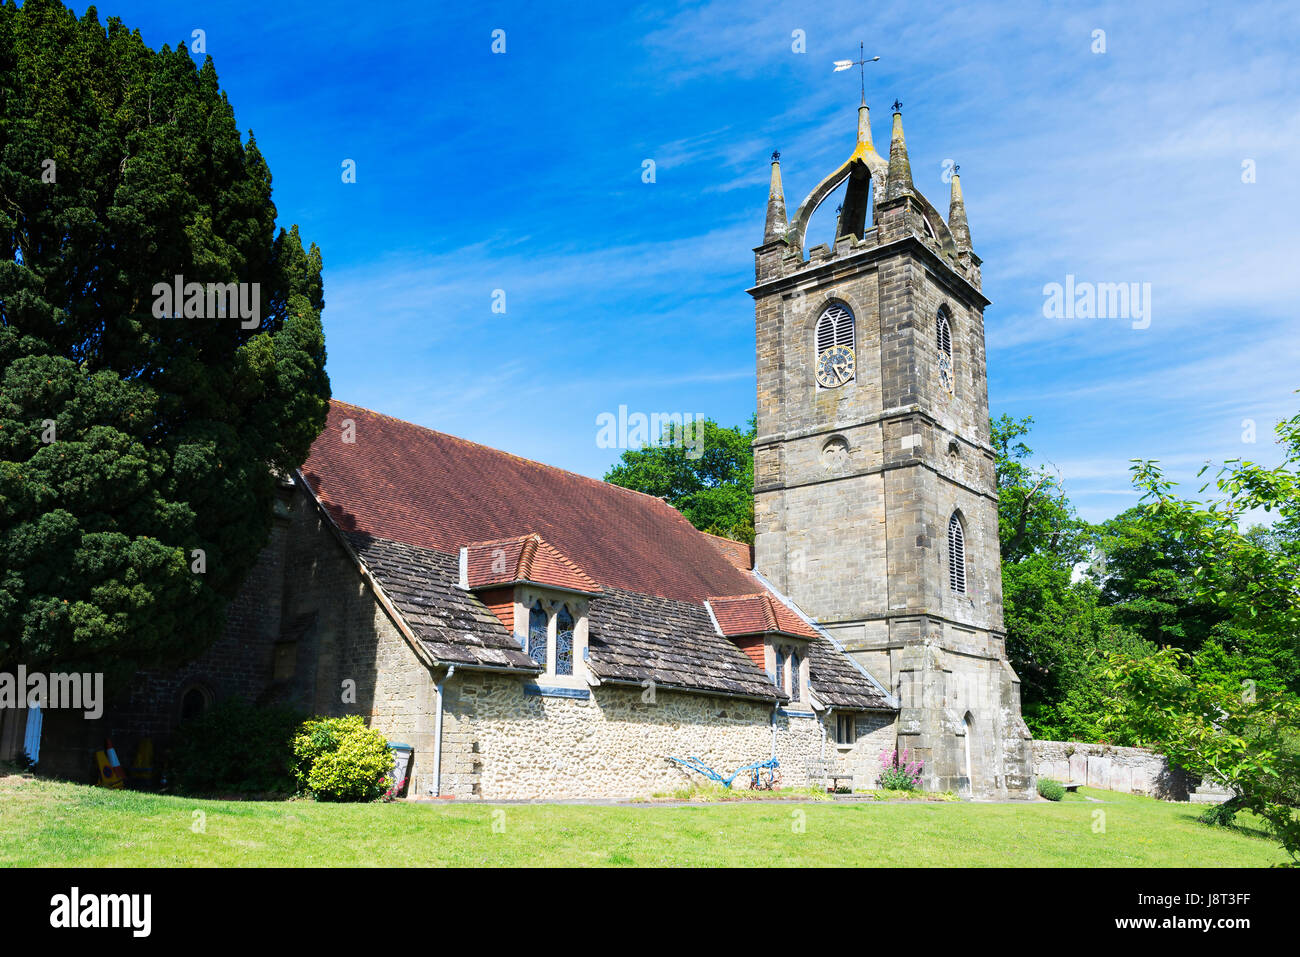 The Church of All Hallows in the village of Tillington near Petworth on a bright spring morning, West Sussex, UK Stock Photo